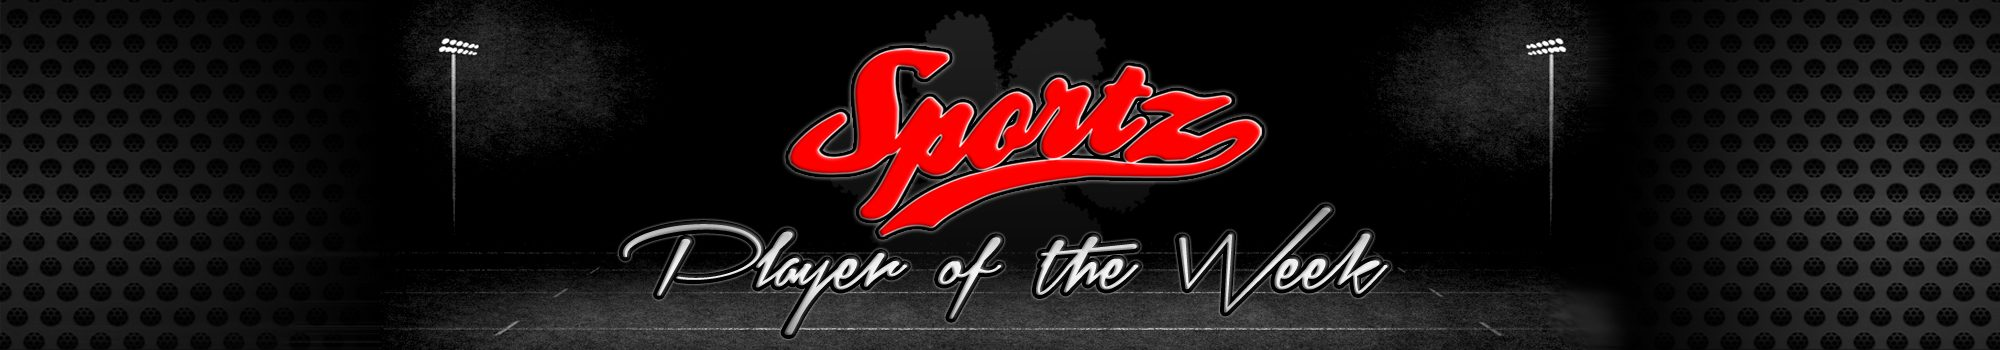 sportz player of the week